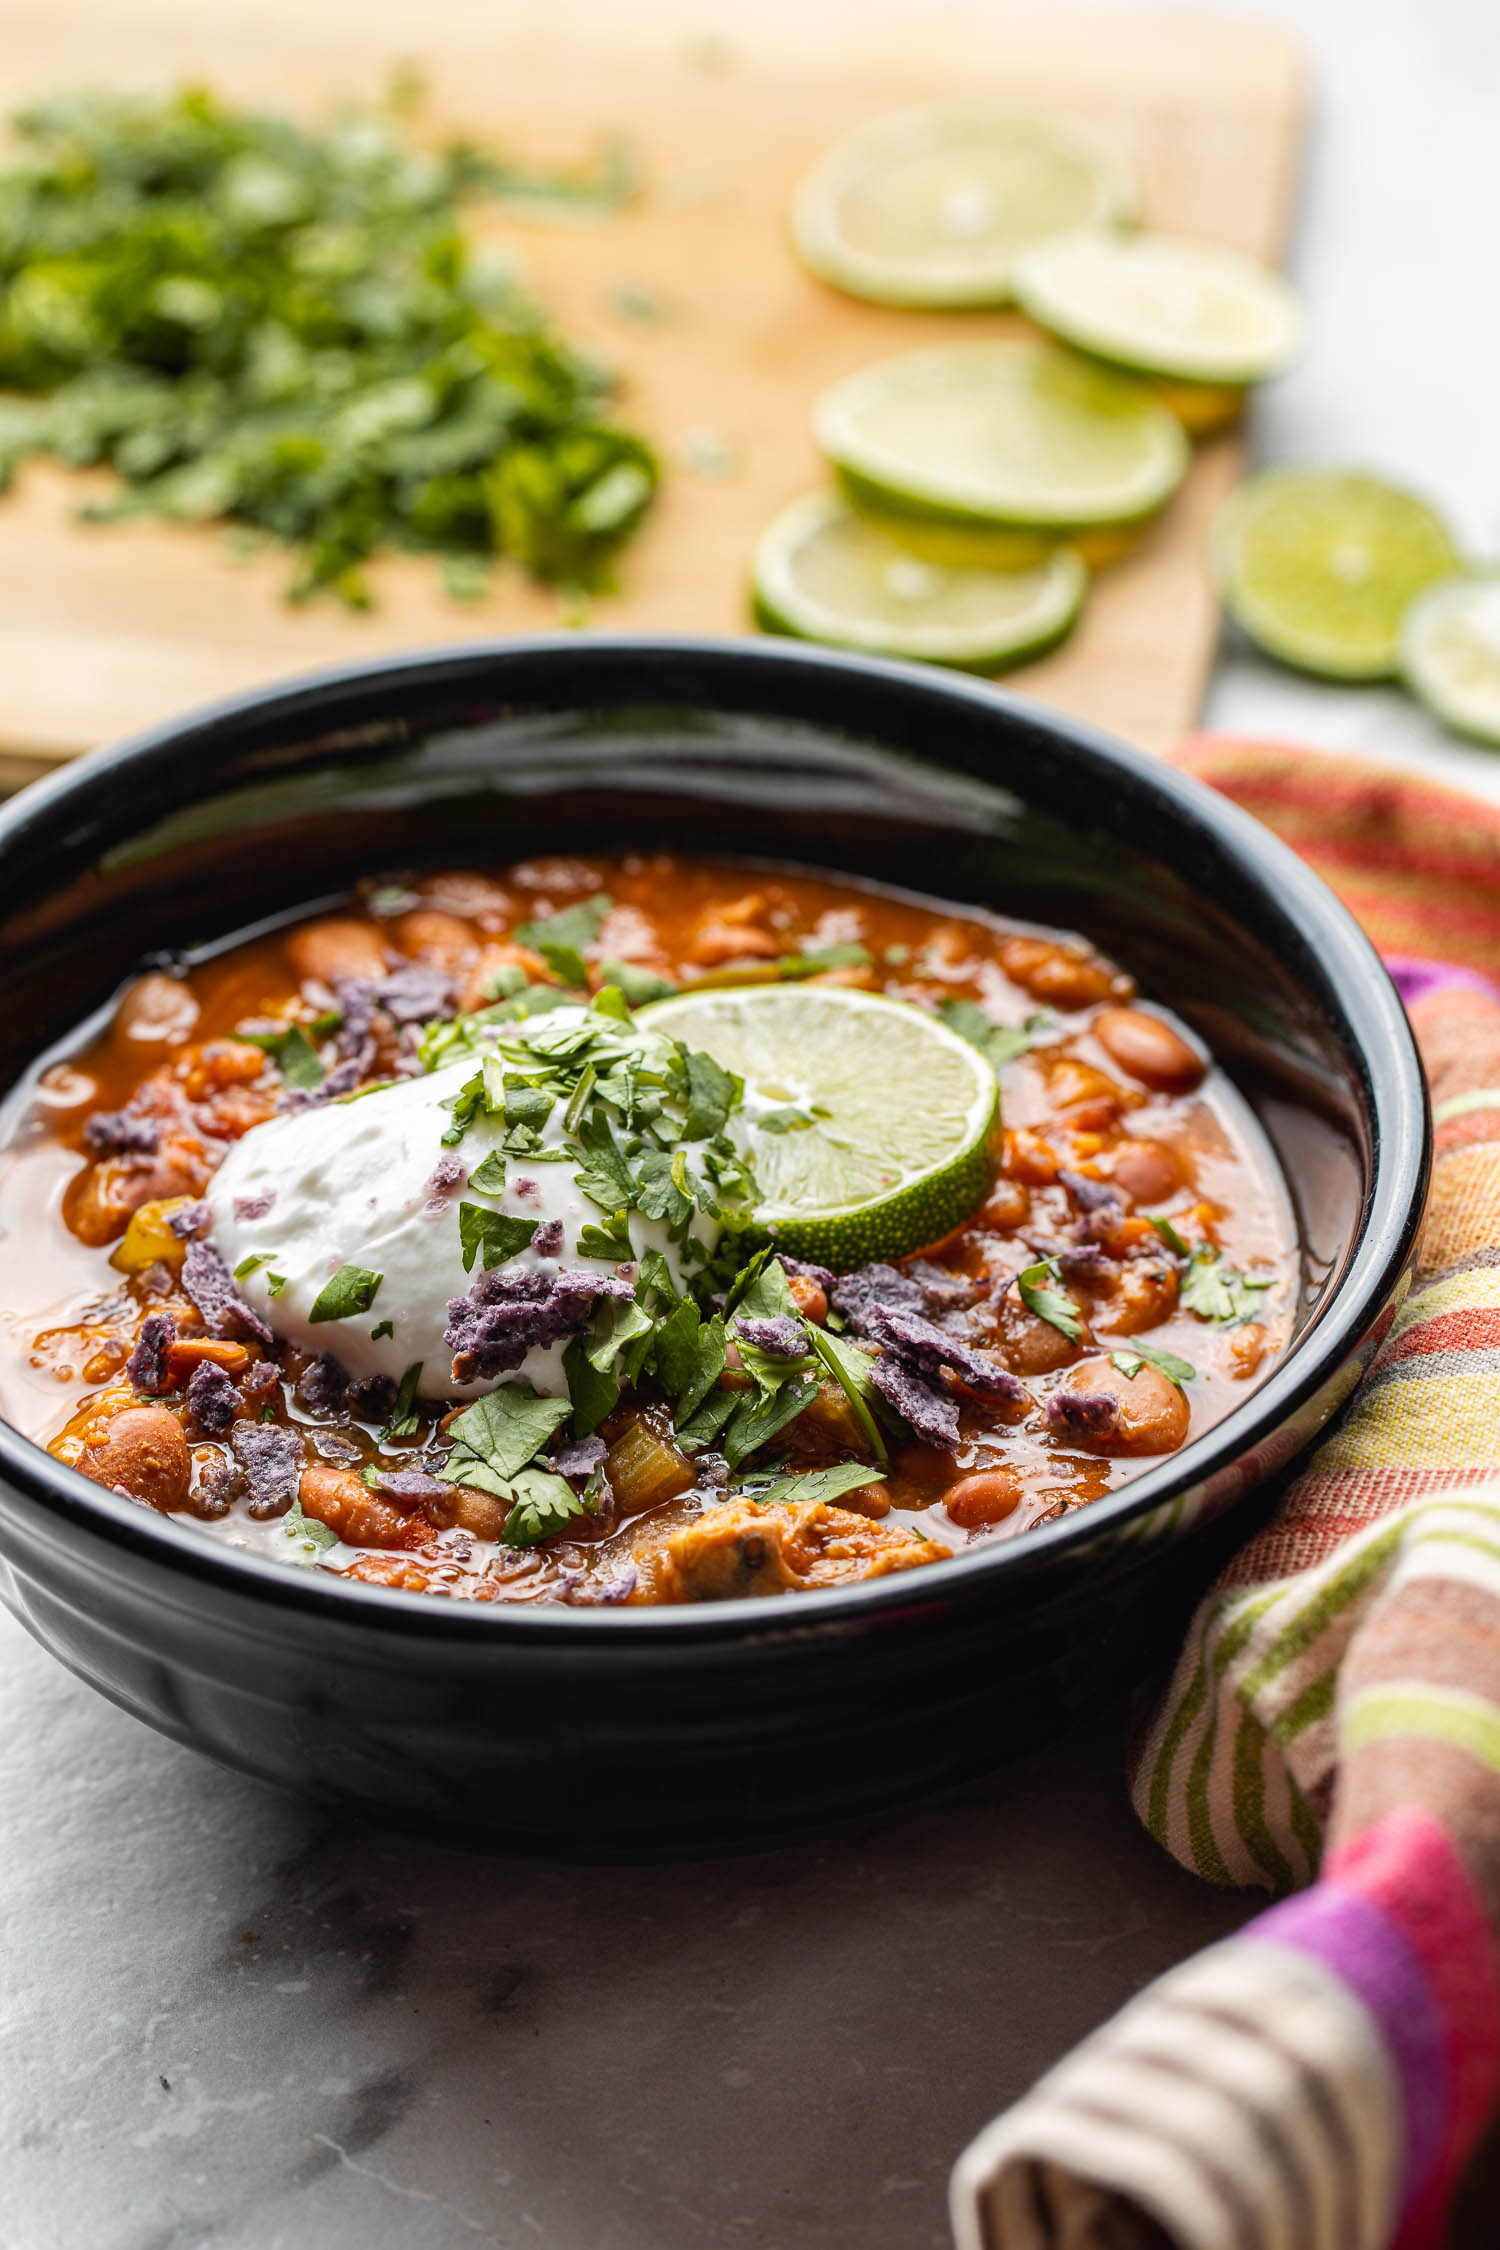 cilantro, limes, and a colorfully striped cotton napkin surround a black bowl filled with chili with sweet potatoes, plant based and gluten free